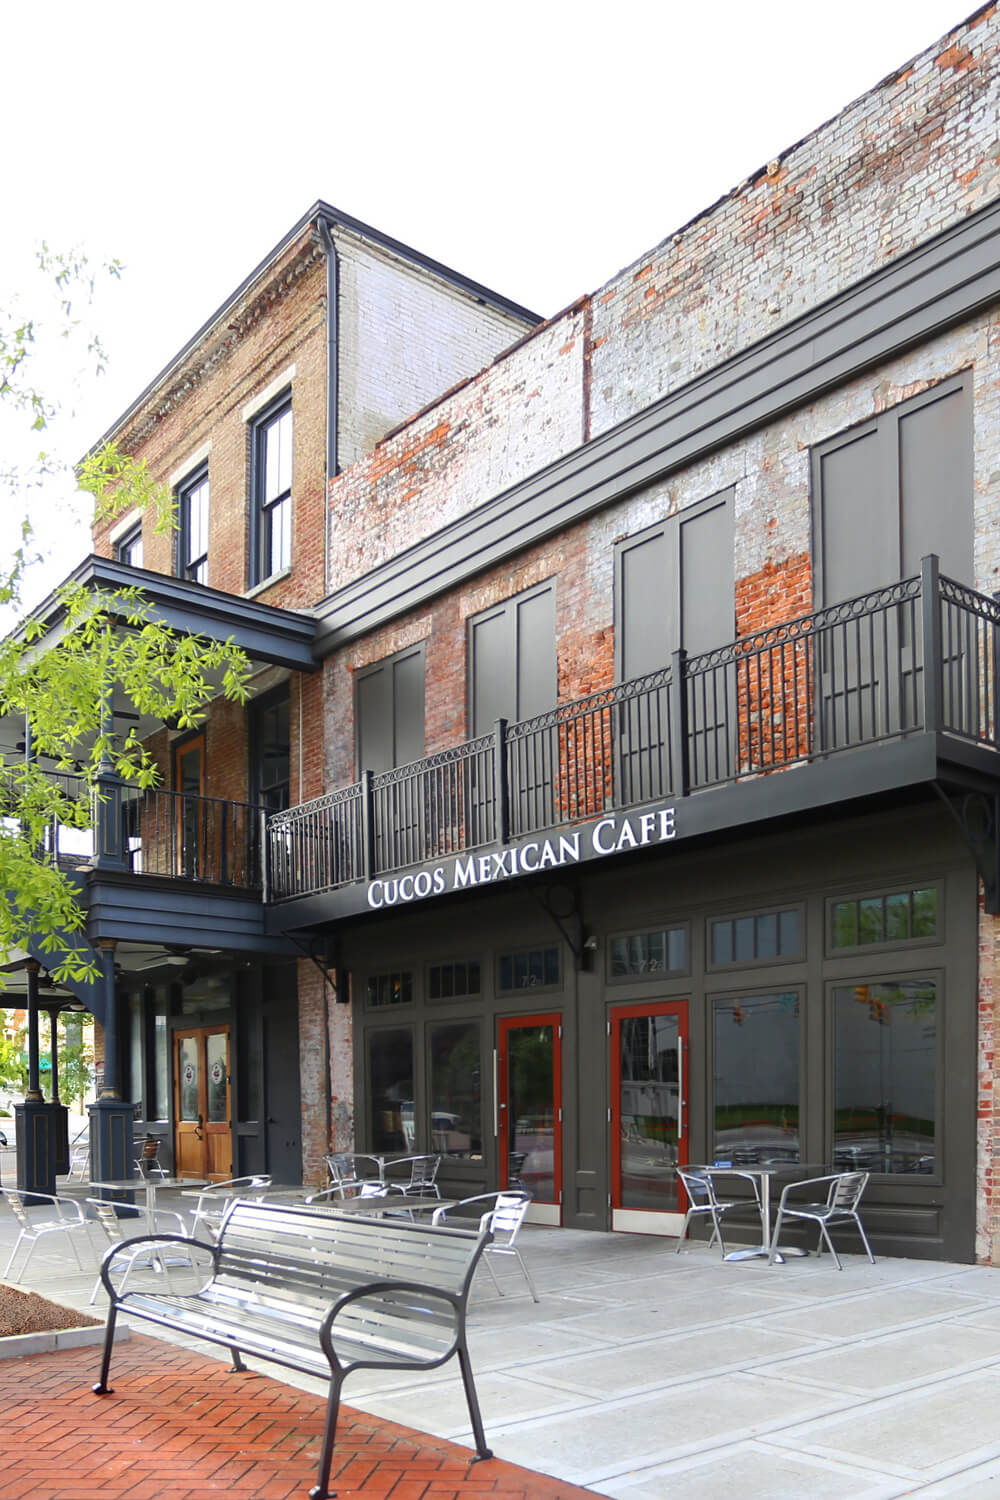 Cuco's Mexican Café Restaurant Designed by Foshee Architecture – View of the Exterior